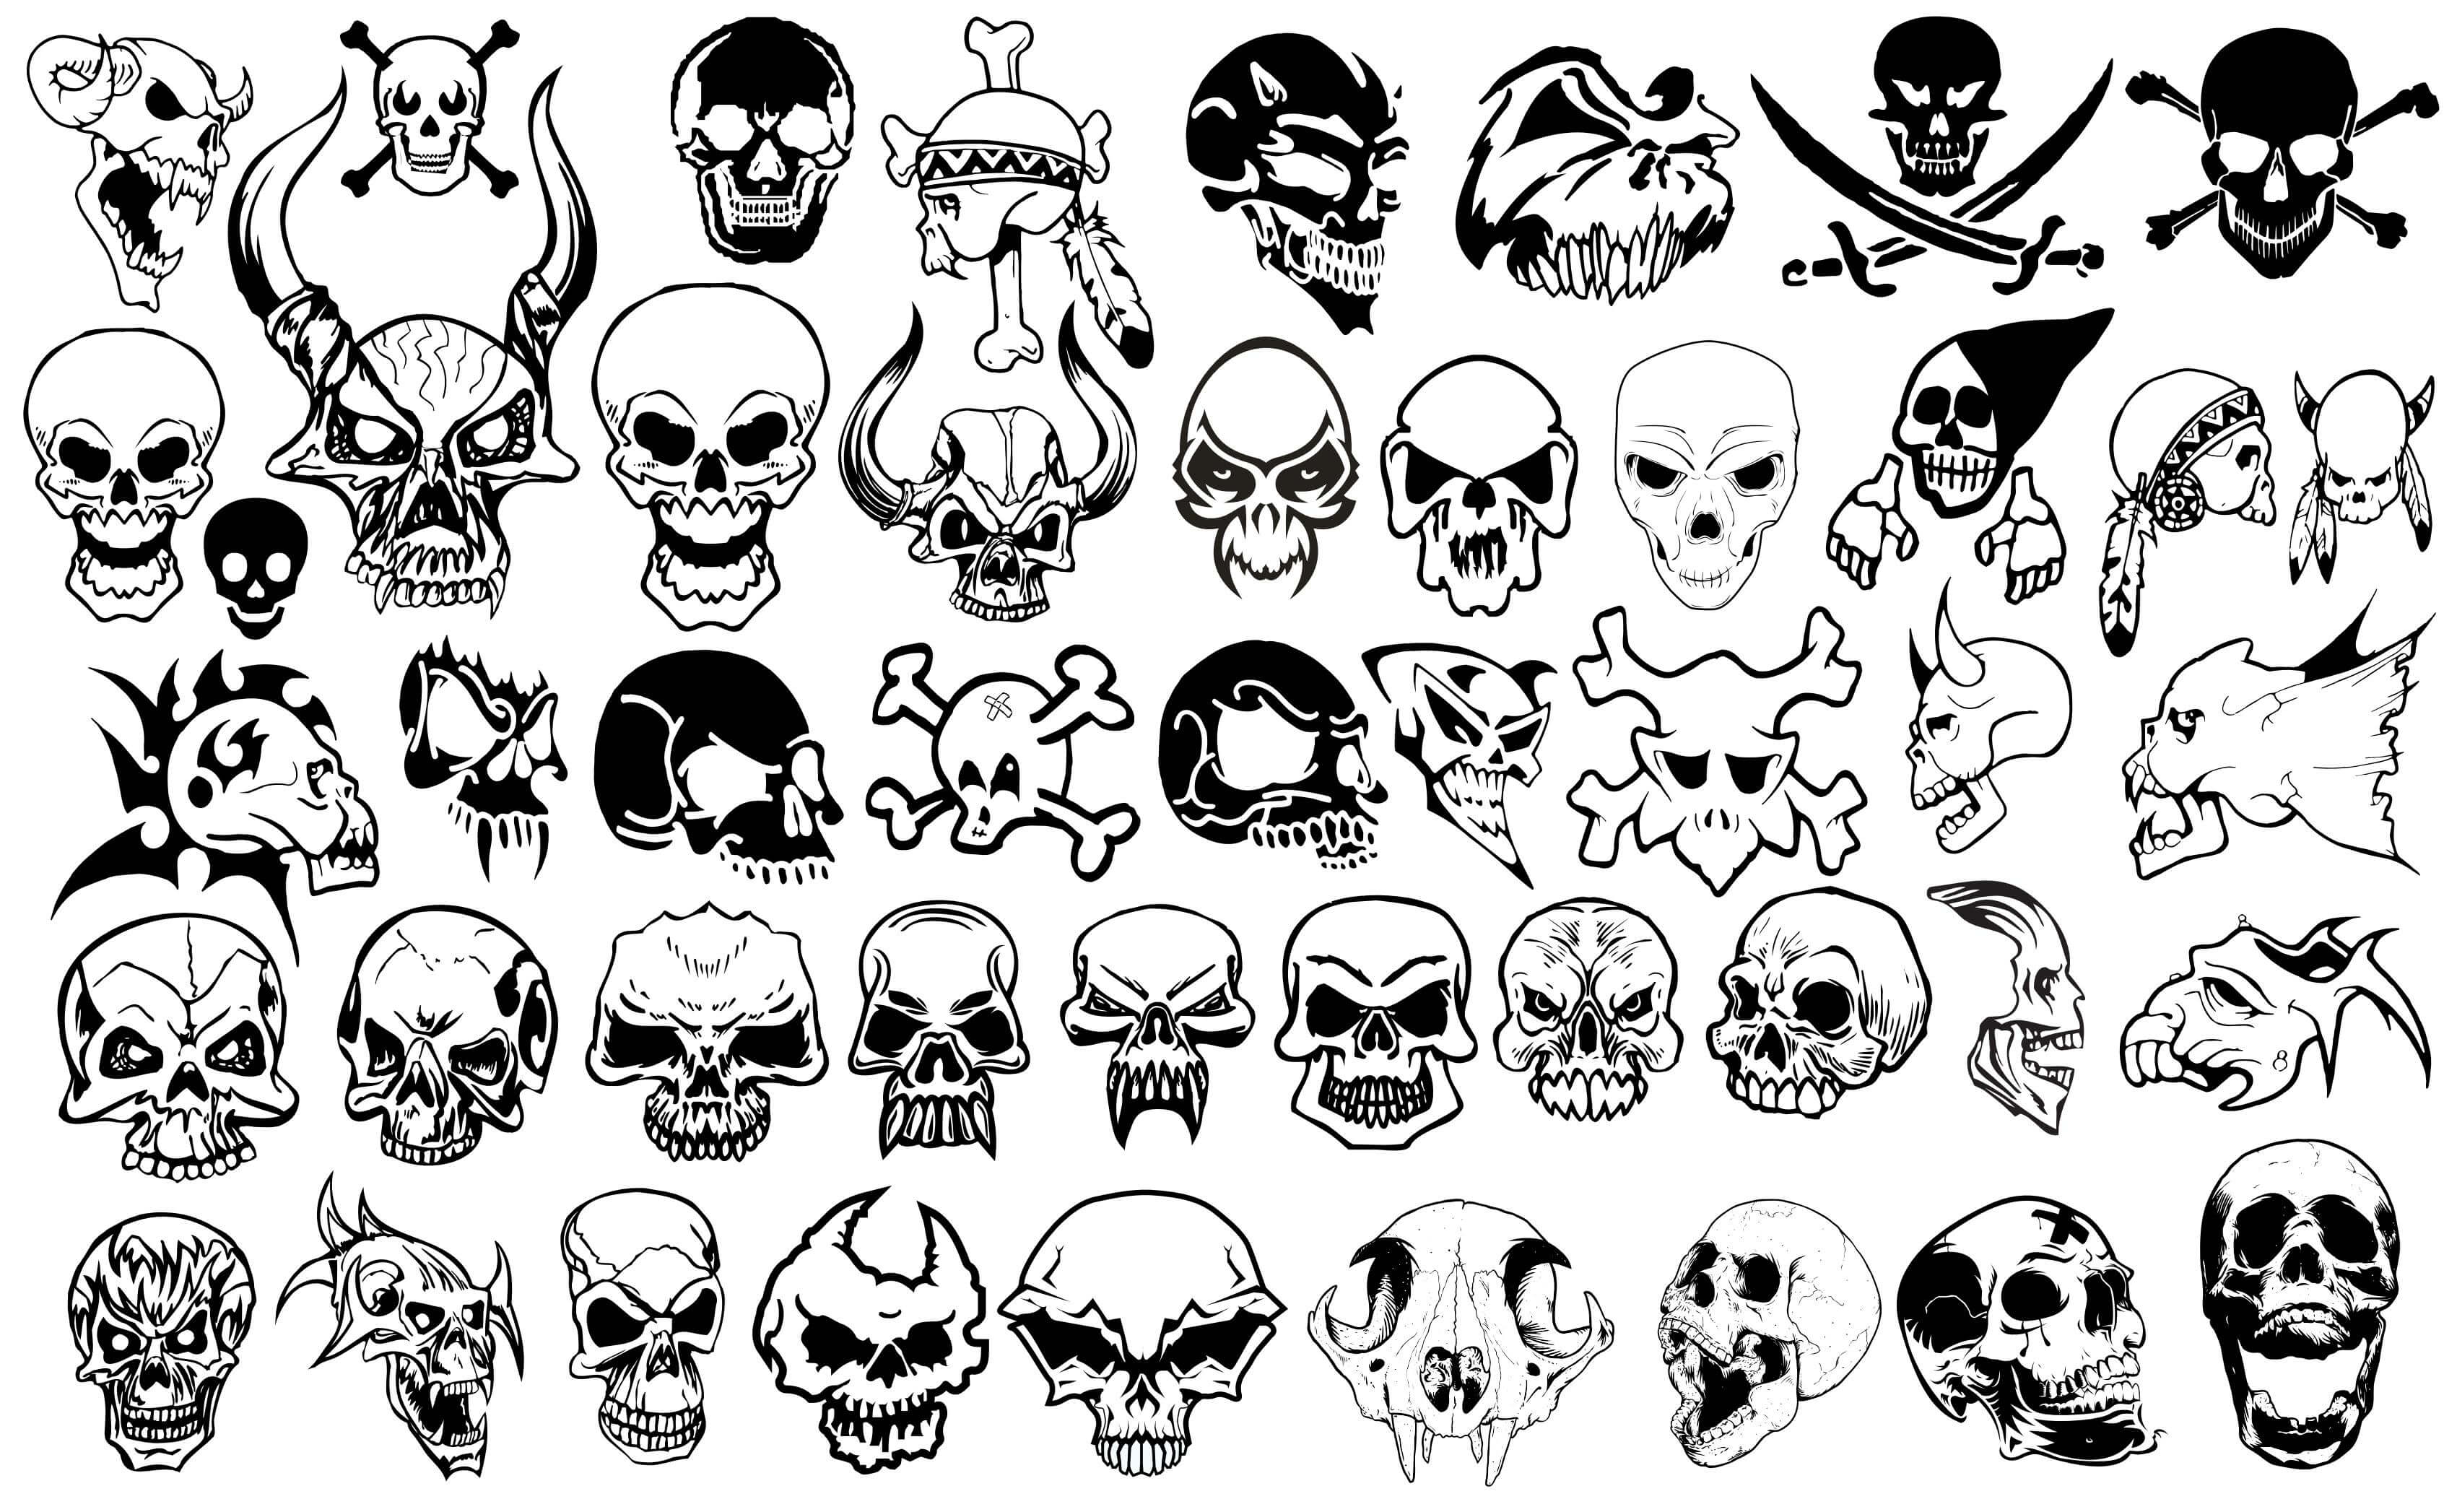 Skull and Crossbones Silhouettes vector